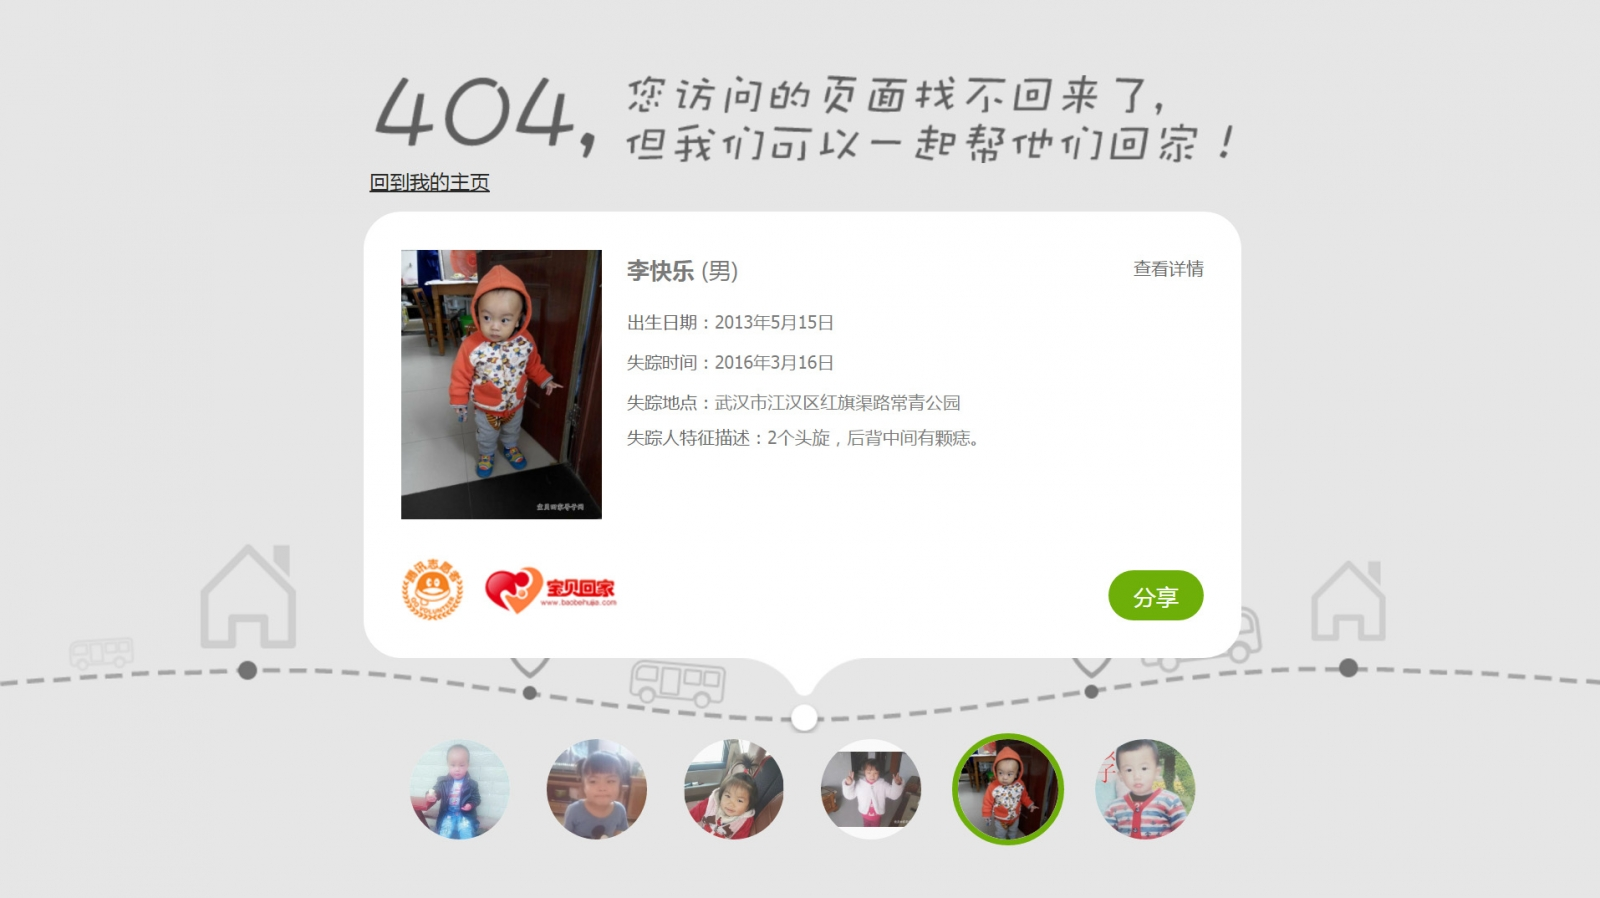 Using 404 pages to locate missing children